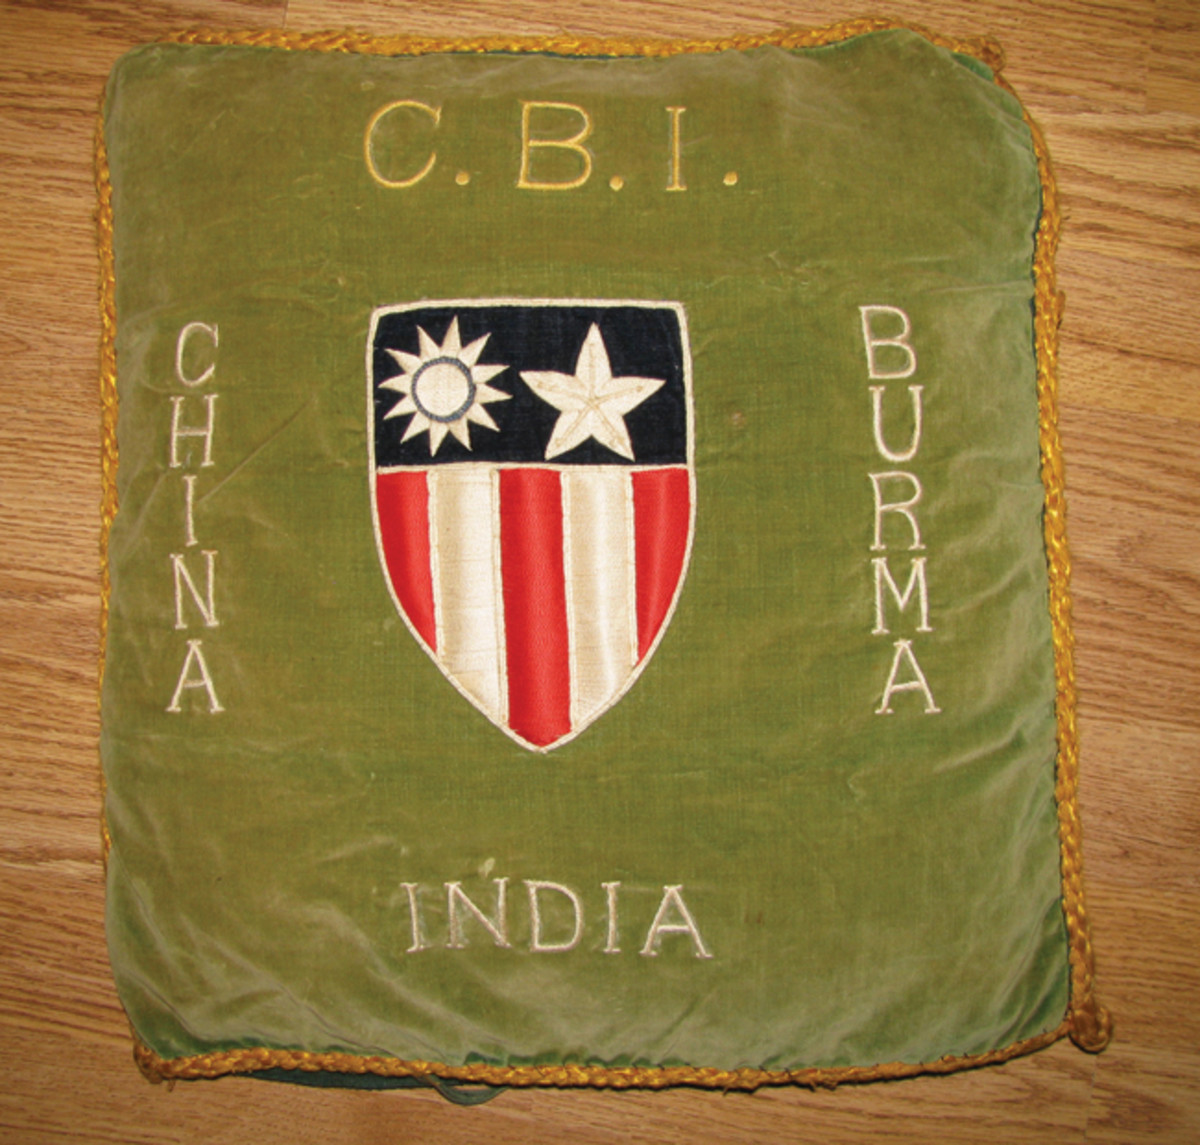 Some of the more elaborate pieces came from the China, Burma, India (CBI) theater, such as this heavily embroidered pillow case with the theatre shield.